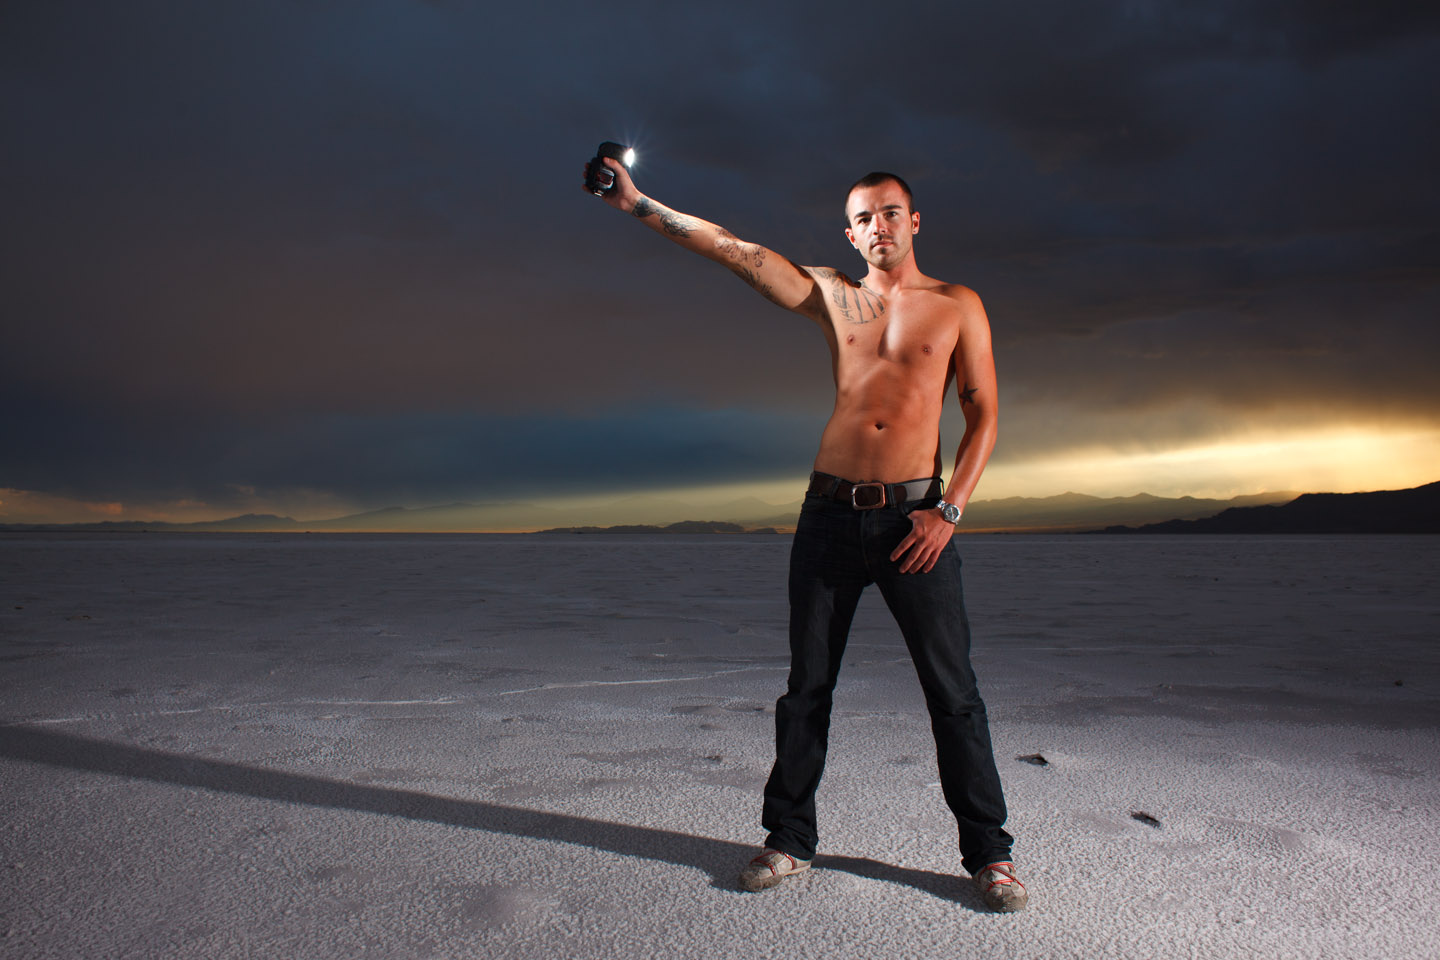 Getting creative with speedlights and male models on the salt flats